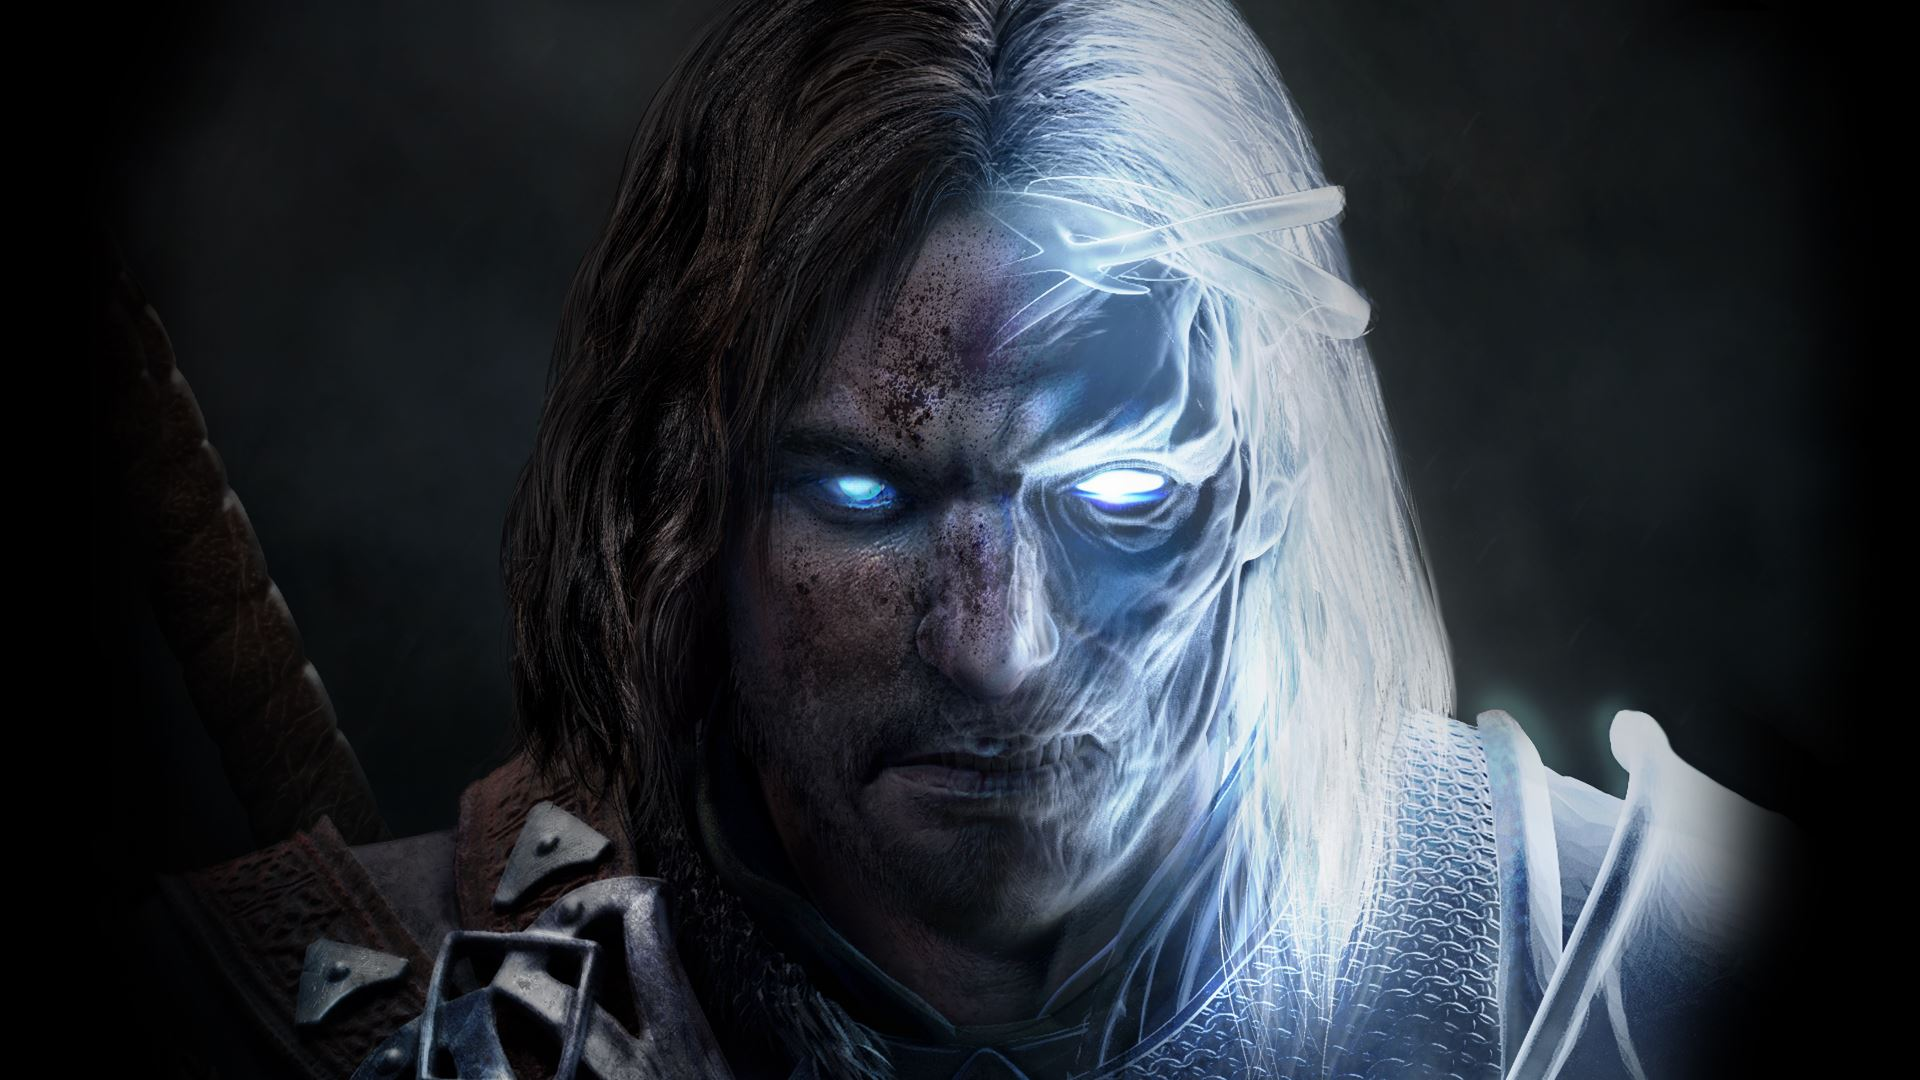 Shadow Of Mordor Wallpaper Wallpaper Free Download 1920x1080